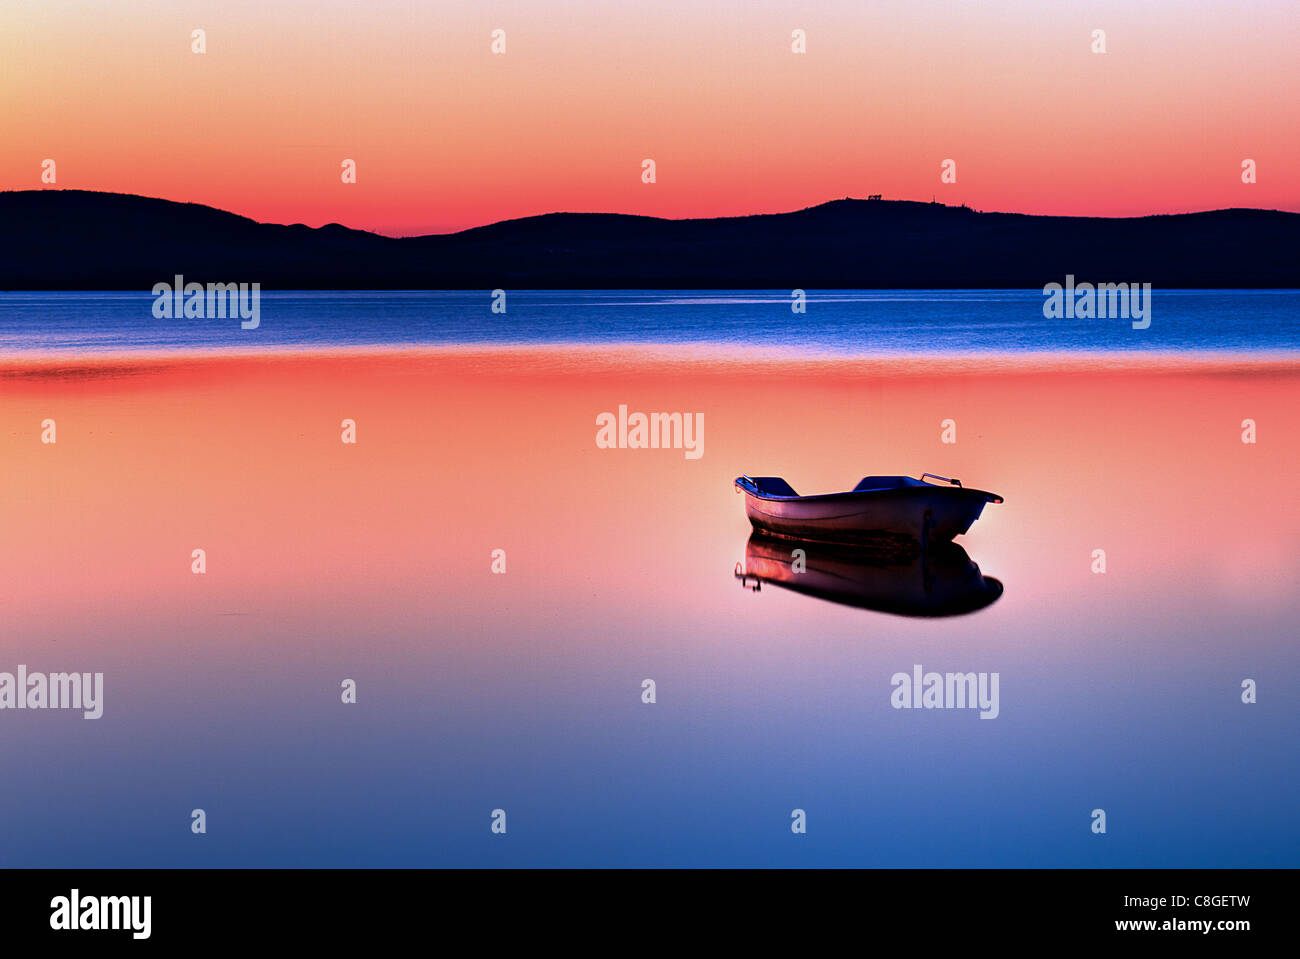 Scenic view of small fishing boat in calm water at sunset with hills in the background. - Stock Image